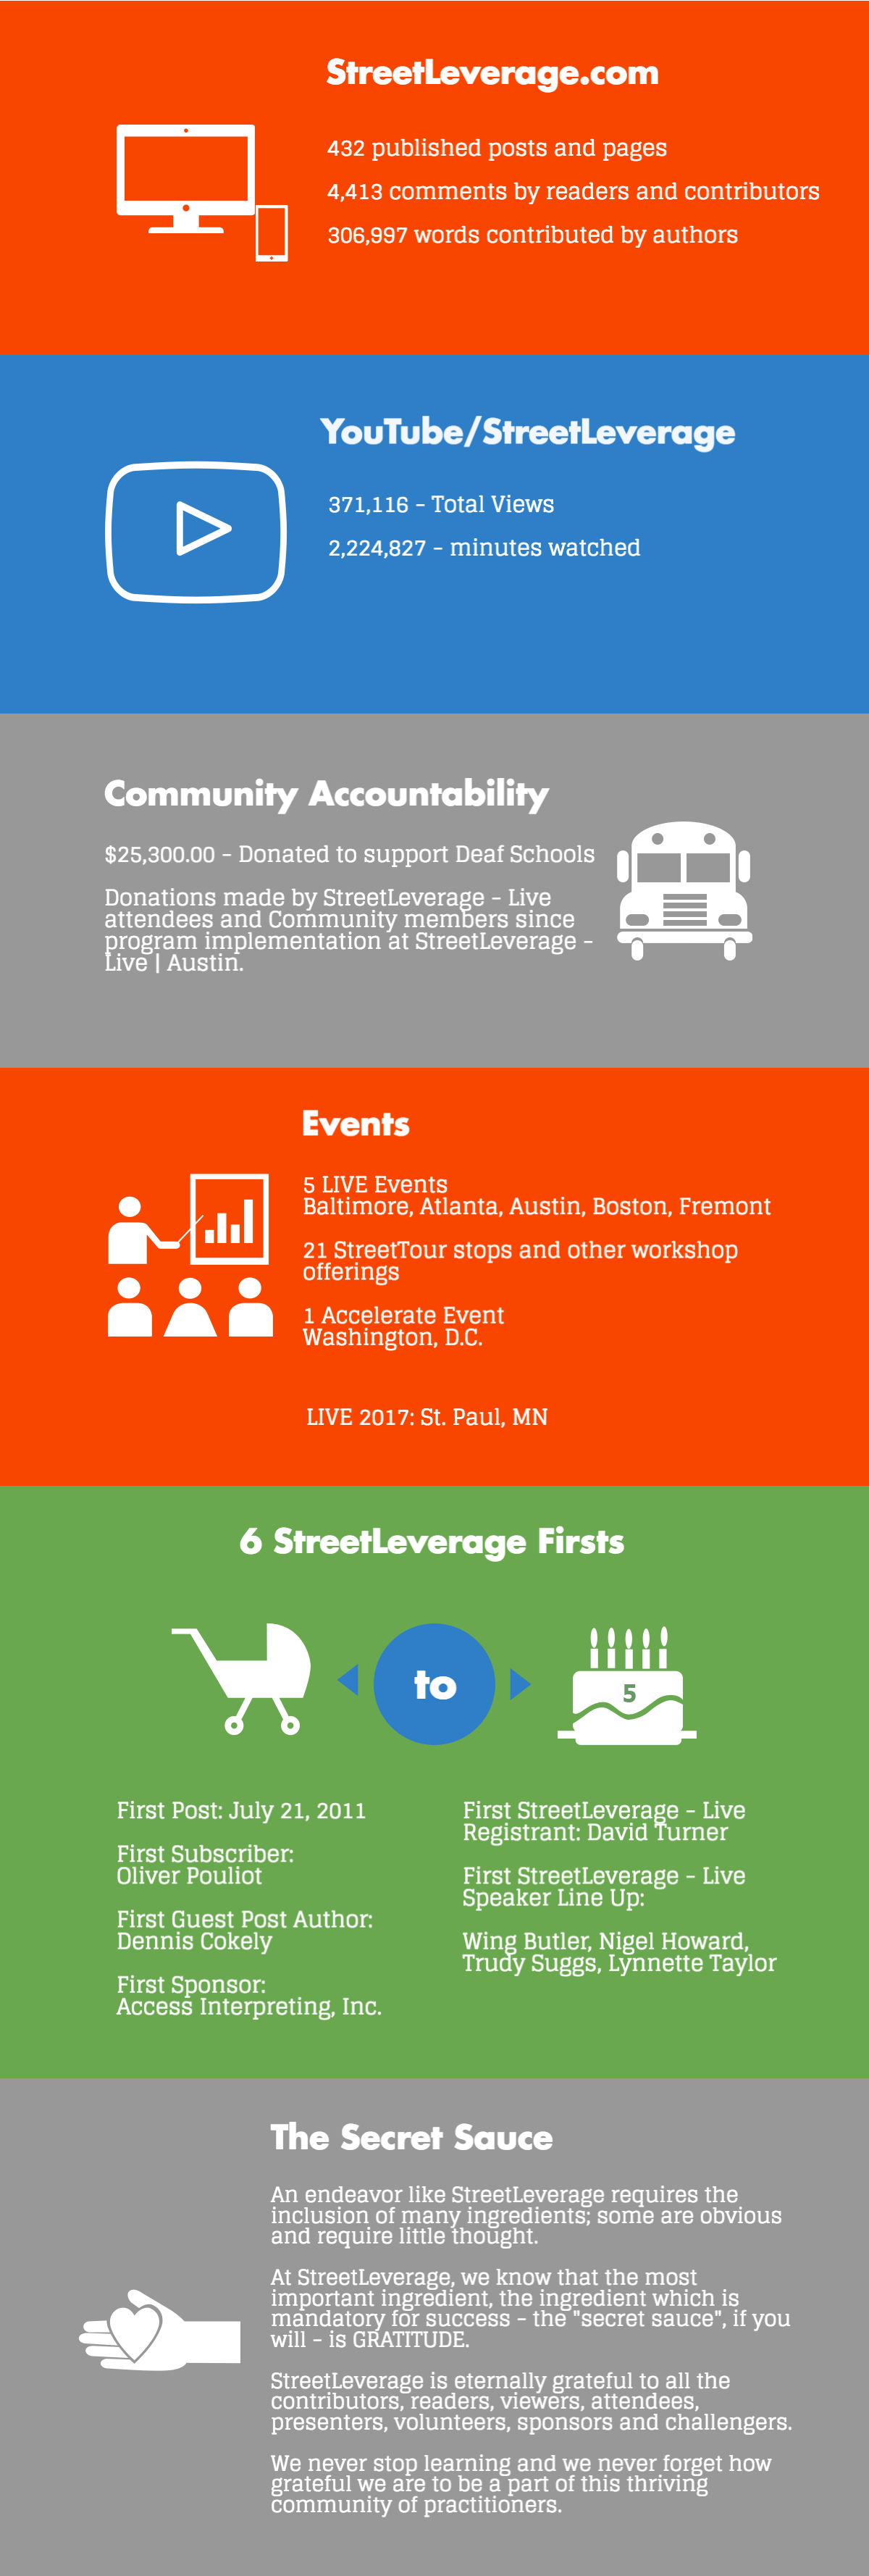 5th Anniversary of StreetLeverage